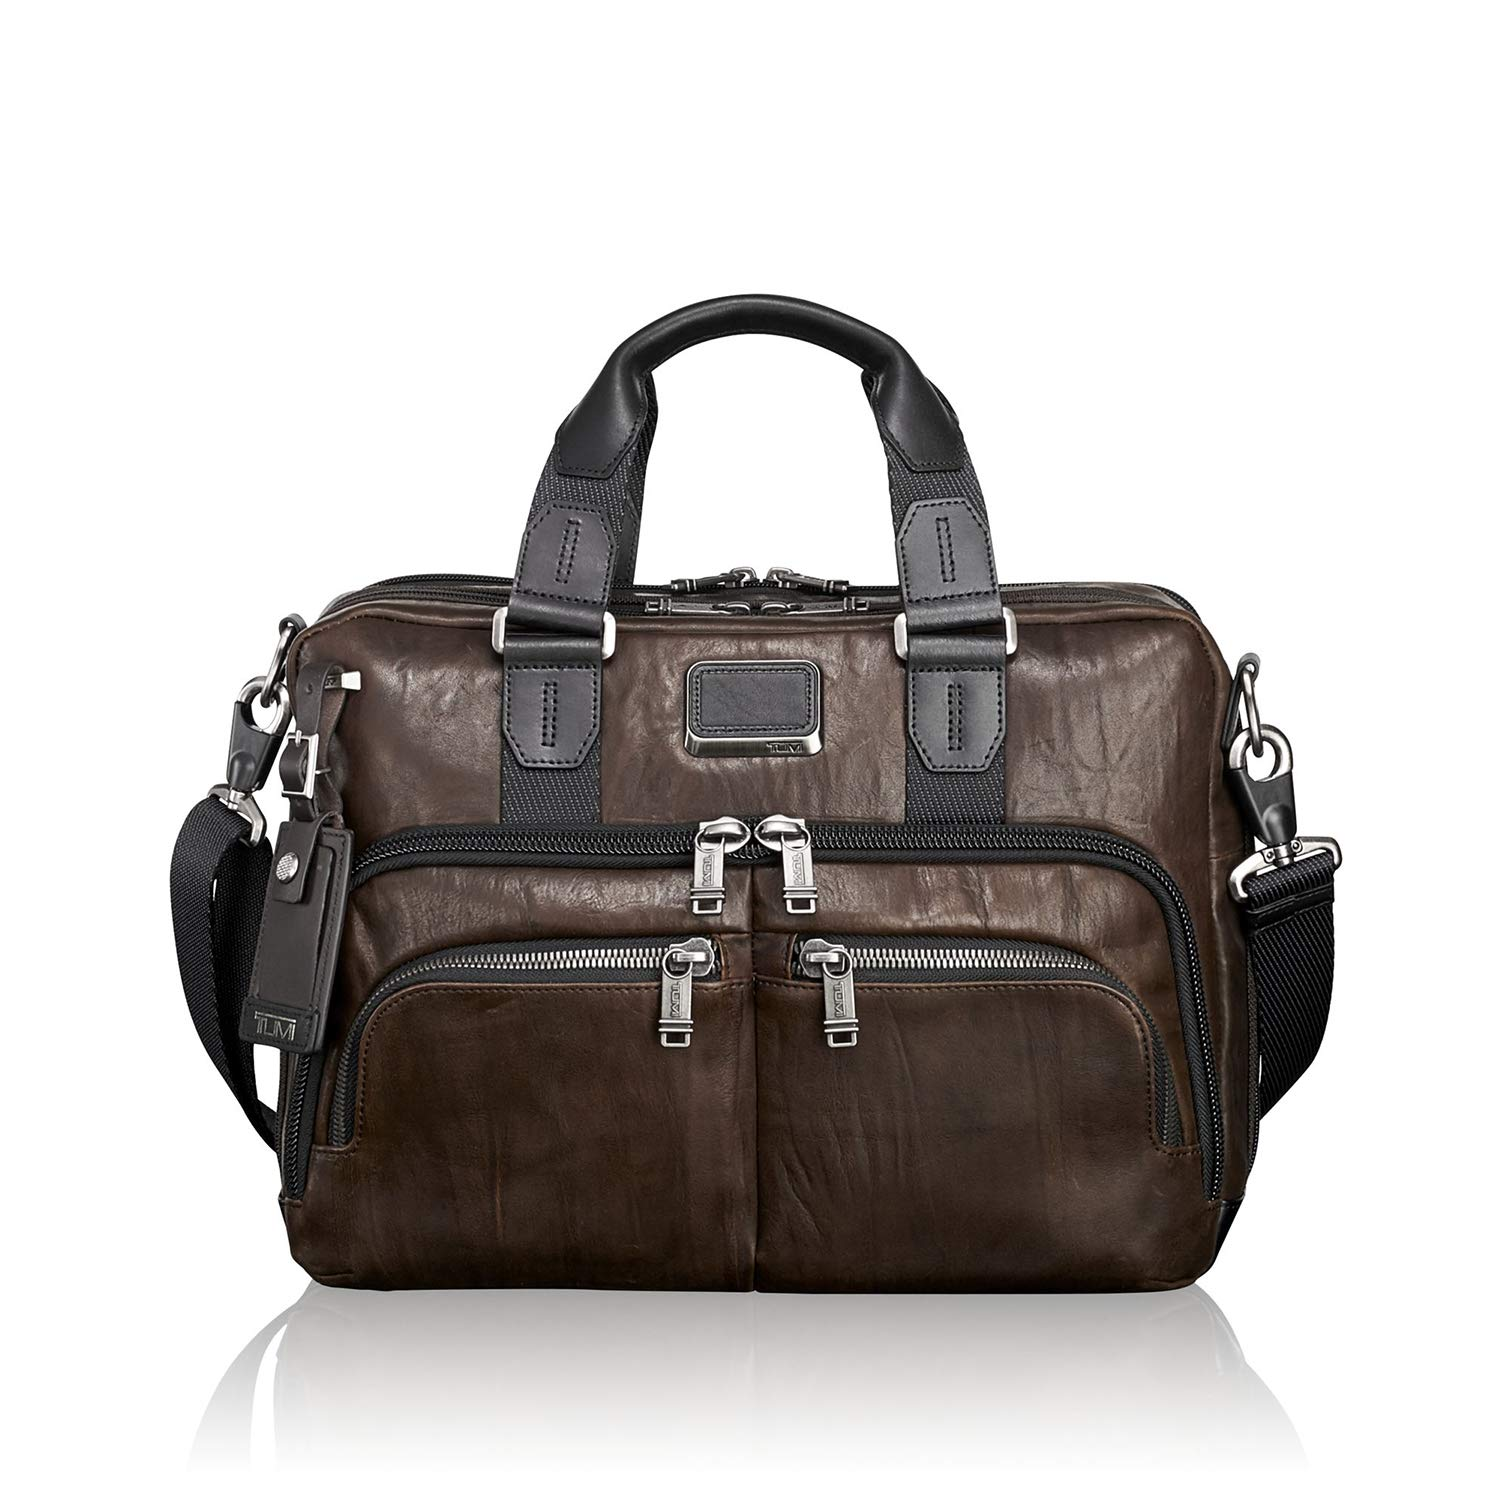 TUMI - Alpha Bravo Albany Leather Laptop Slim Commuter Brief Briefcase - 14 Inch Computer Bag for Men and Women - Dark Brown by TUMI